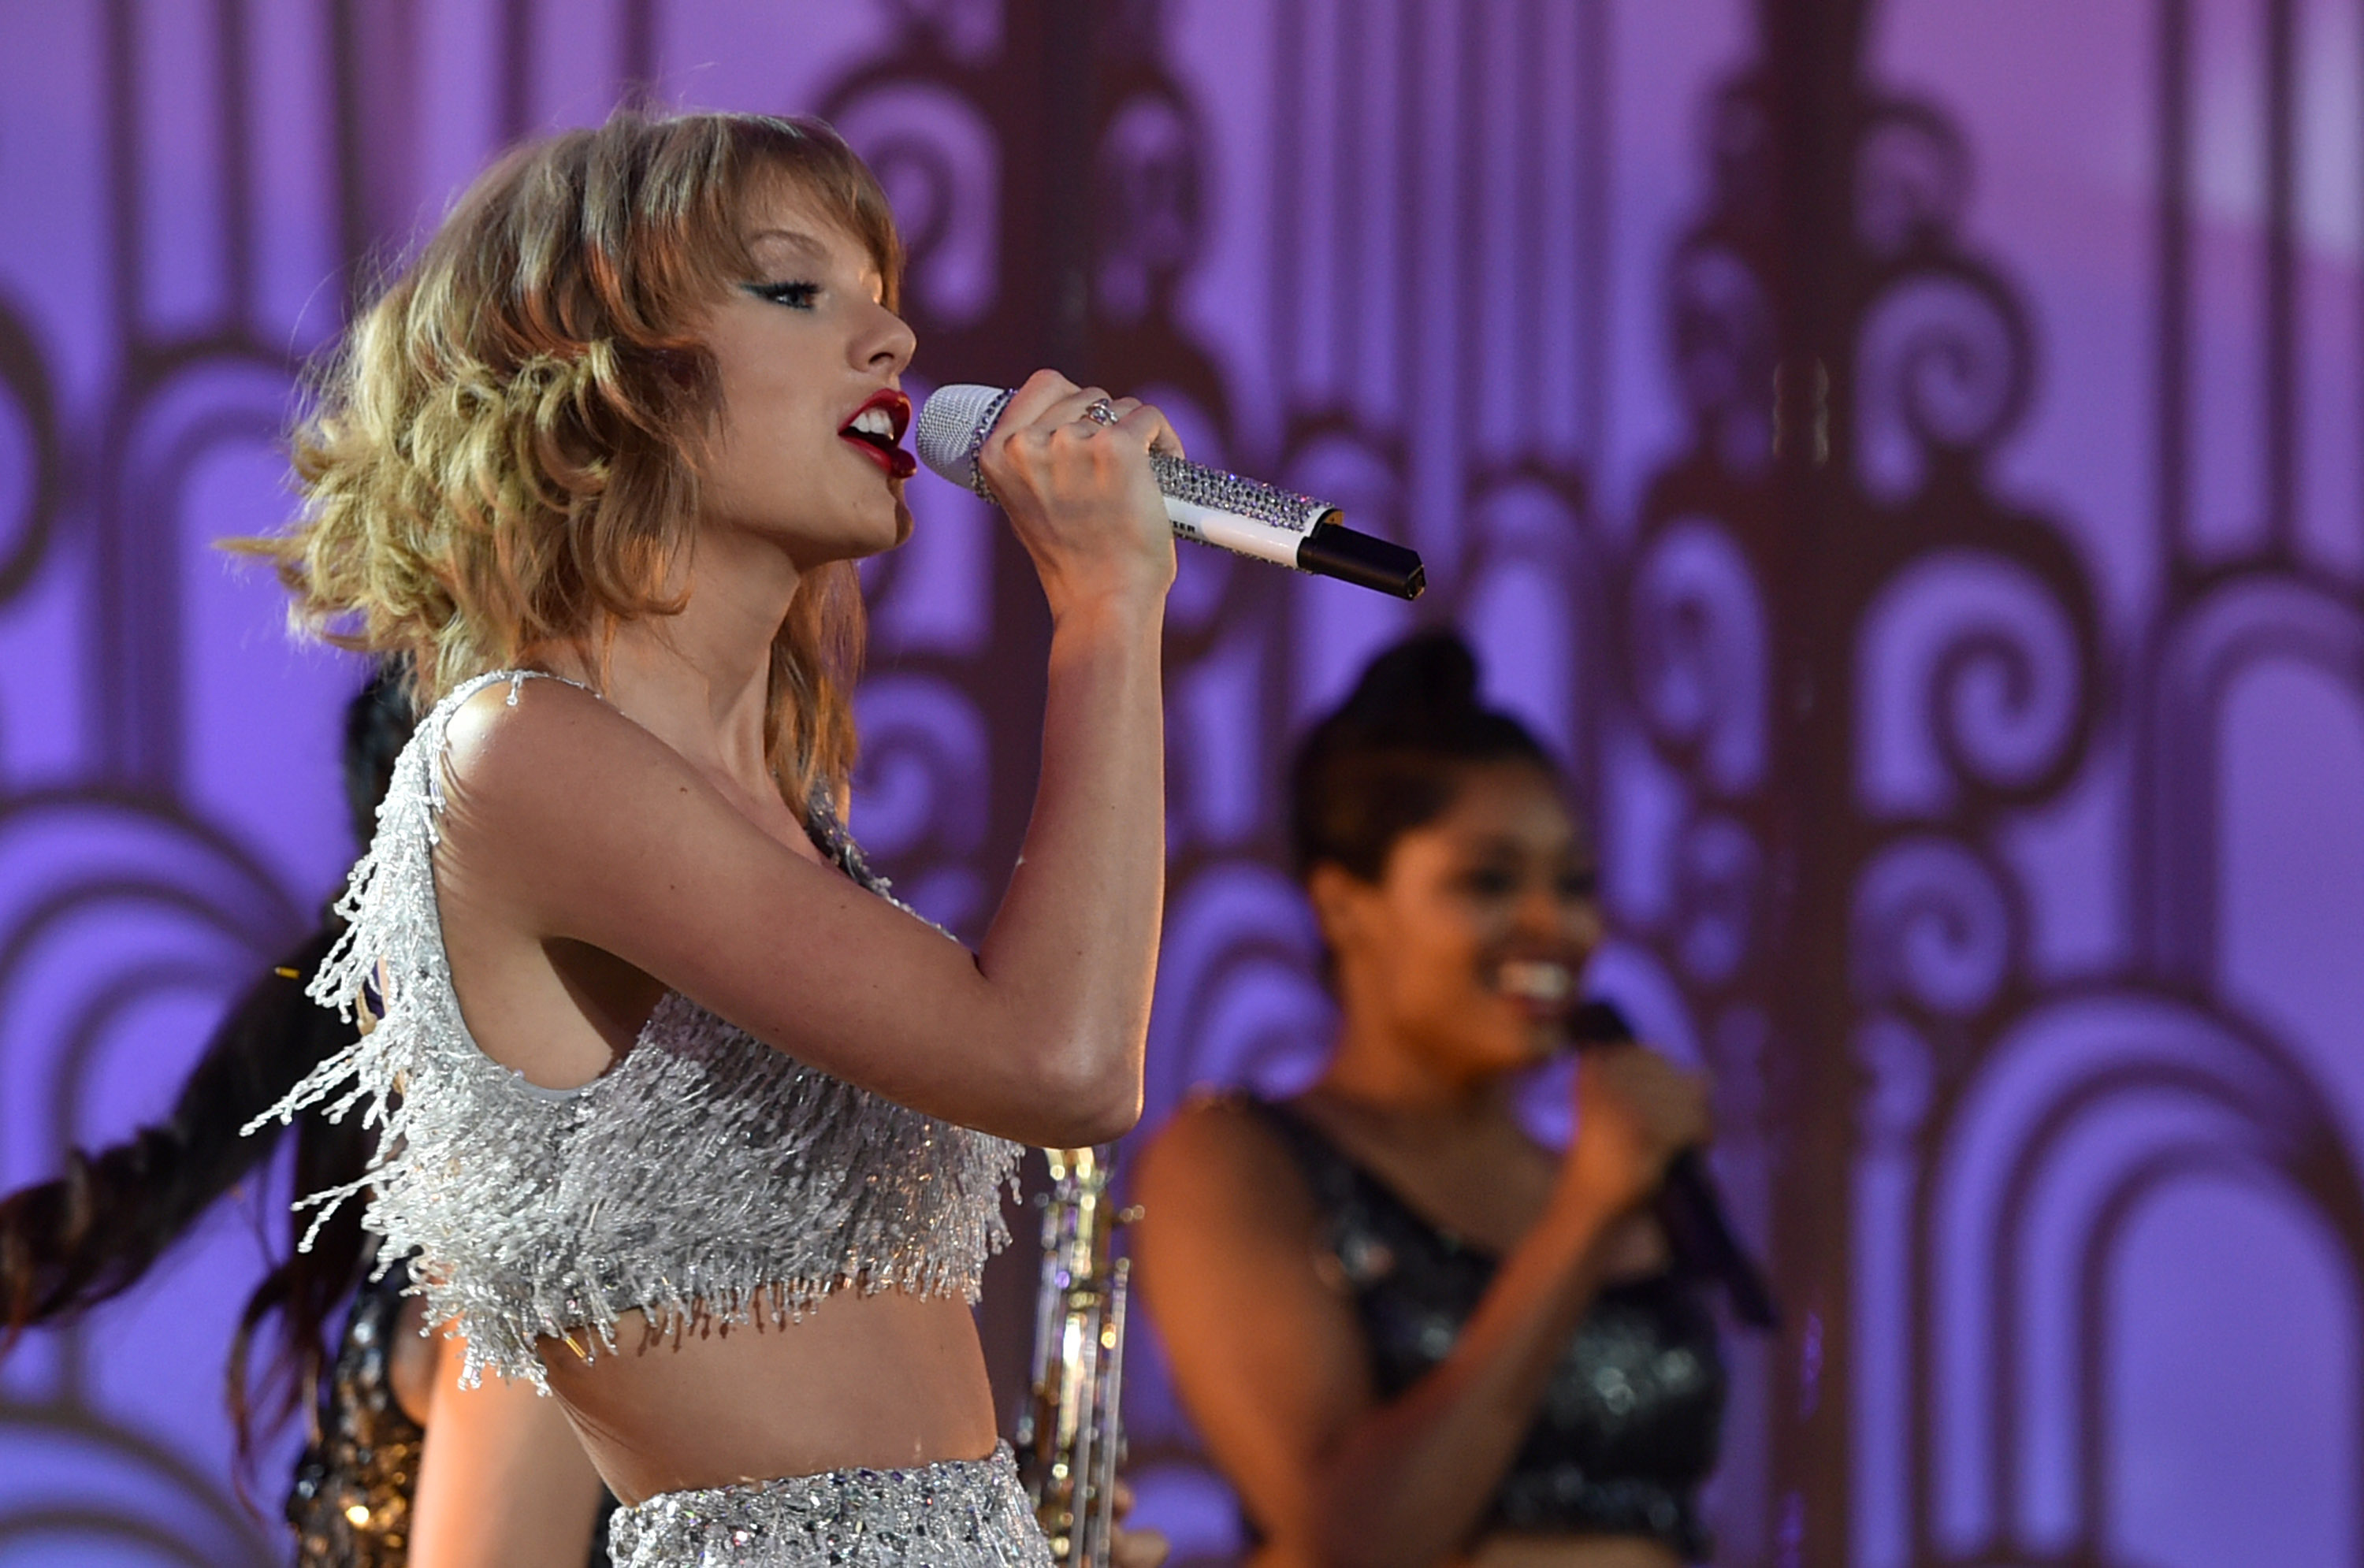 Taylor Swift Dances Her Way to Number One Debut